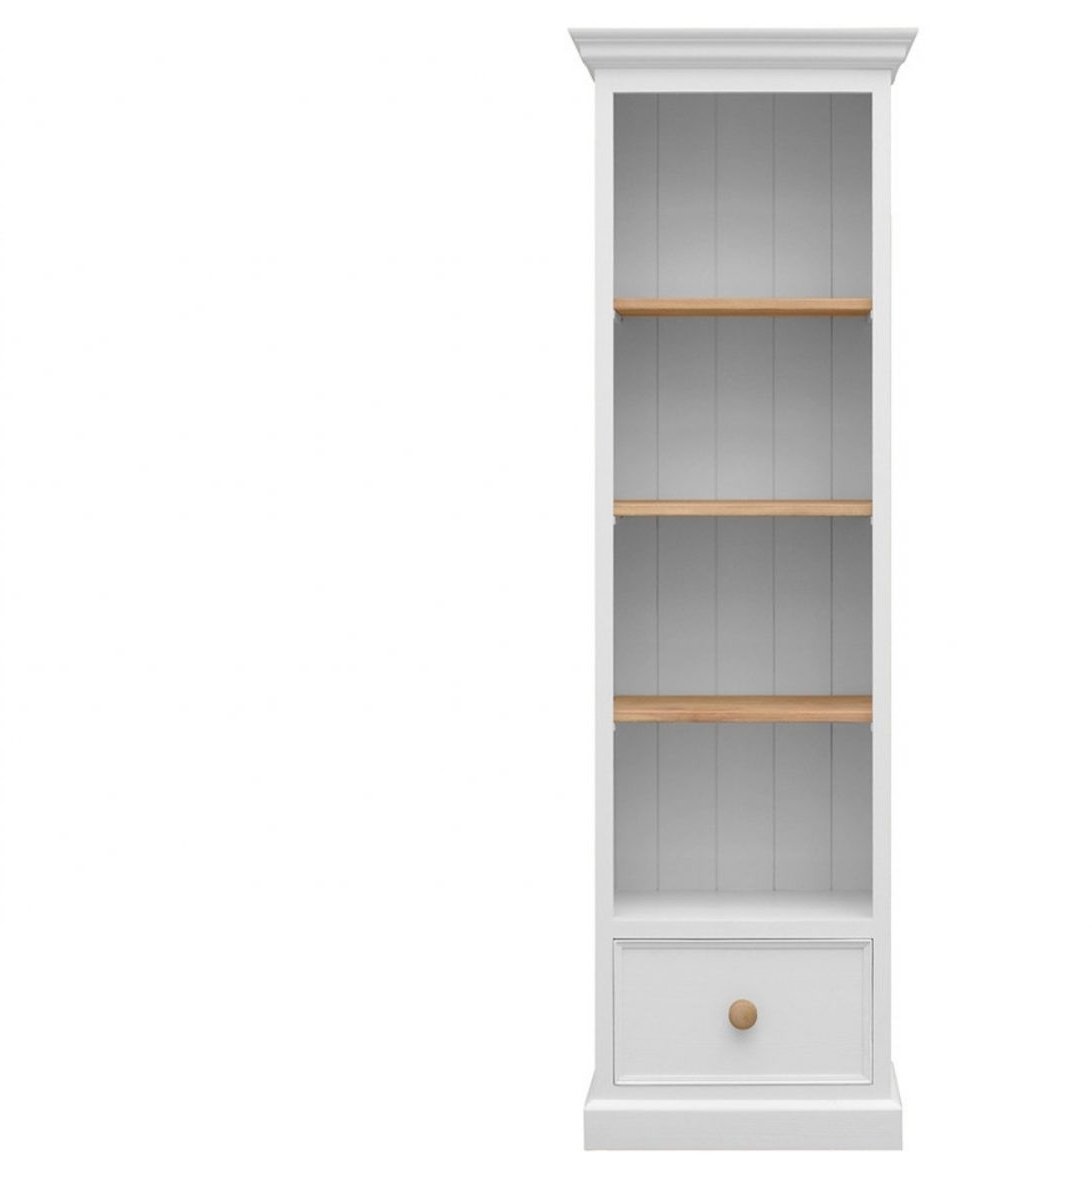 Slim Bookcase Bookcases Sliding Hidden Door Hardwarebookcase Skins For Best And Newest Slim Bookcases (View 9 of 15)